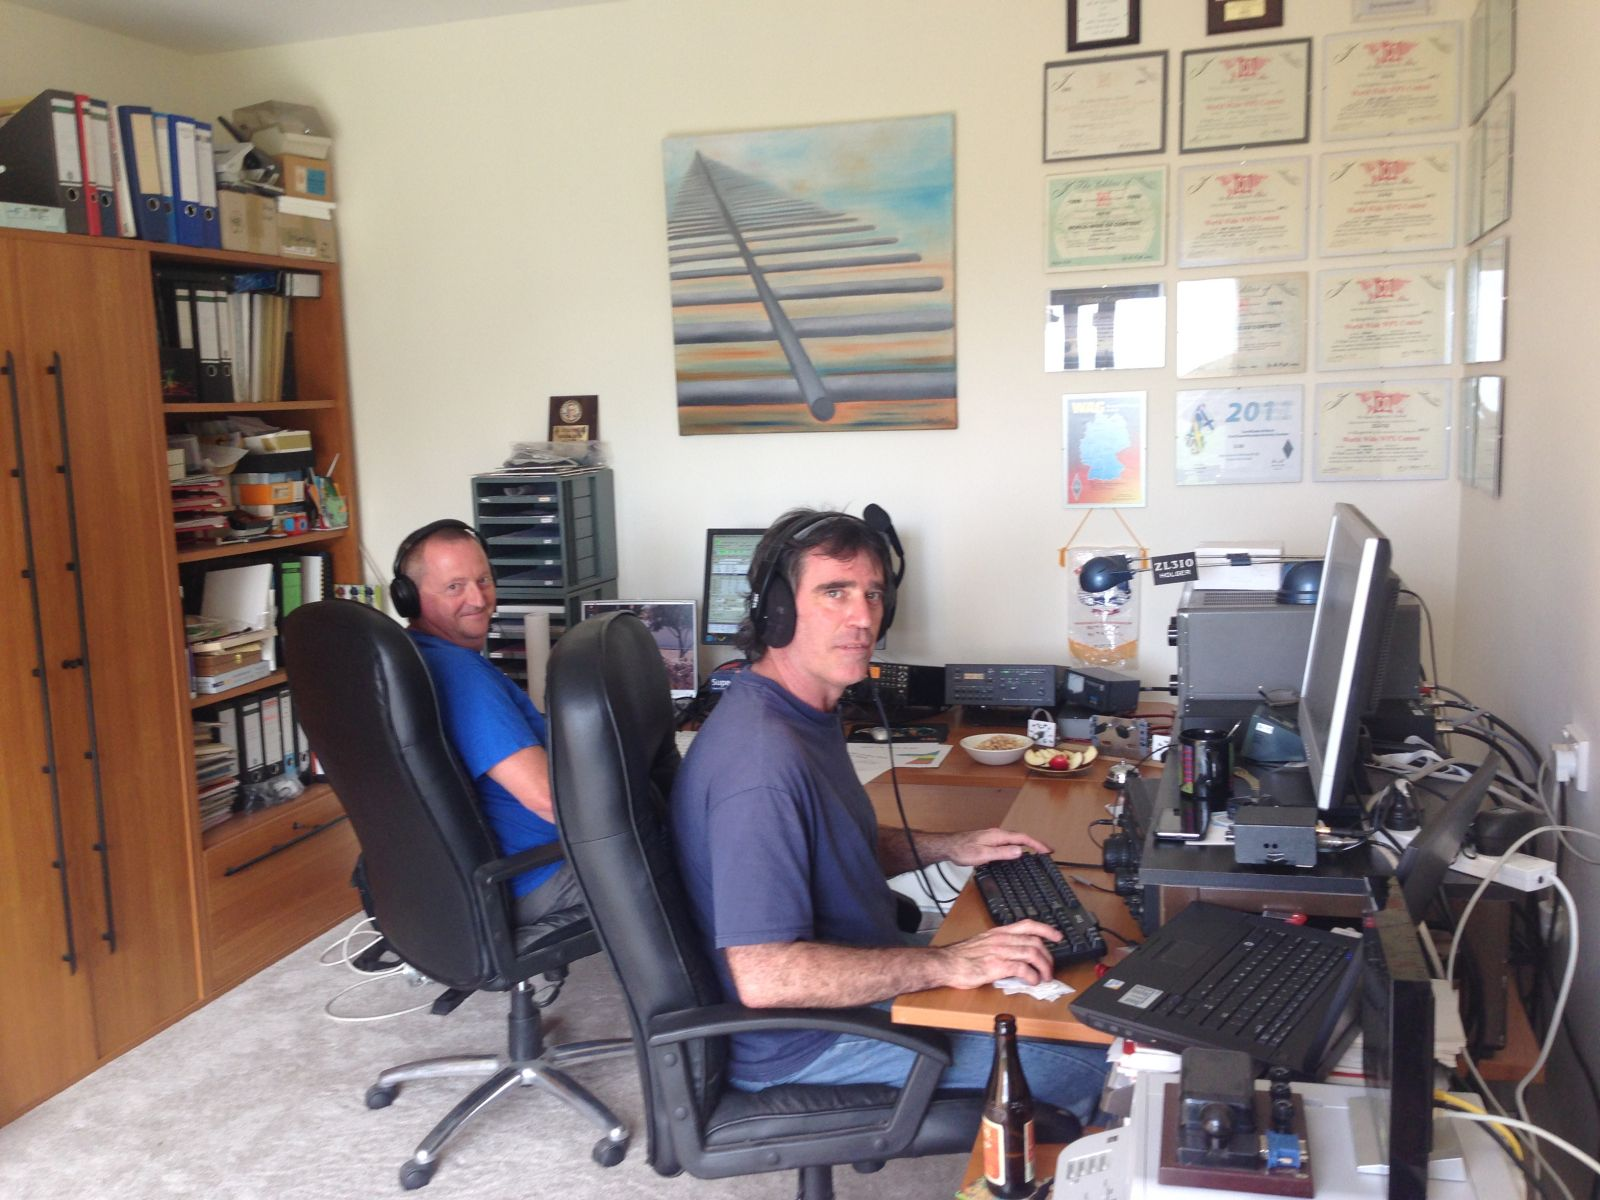 Gary, ZL2iFB & Wes, ZL3TE during ARRL CW contest 2013